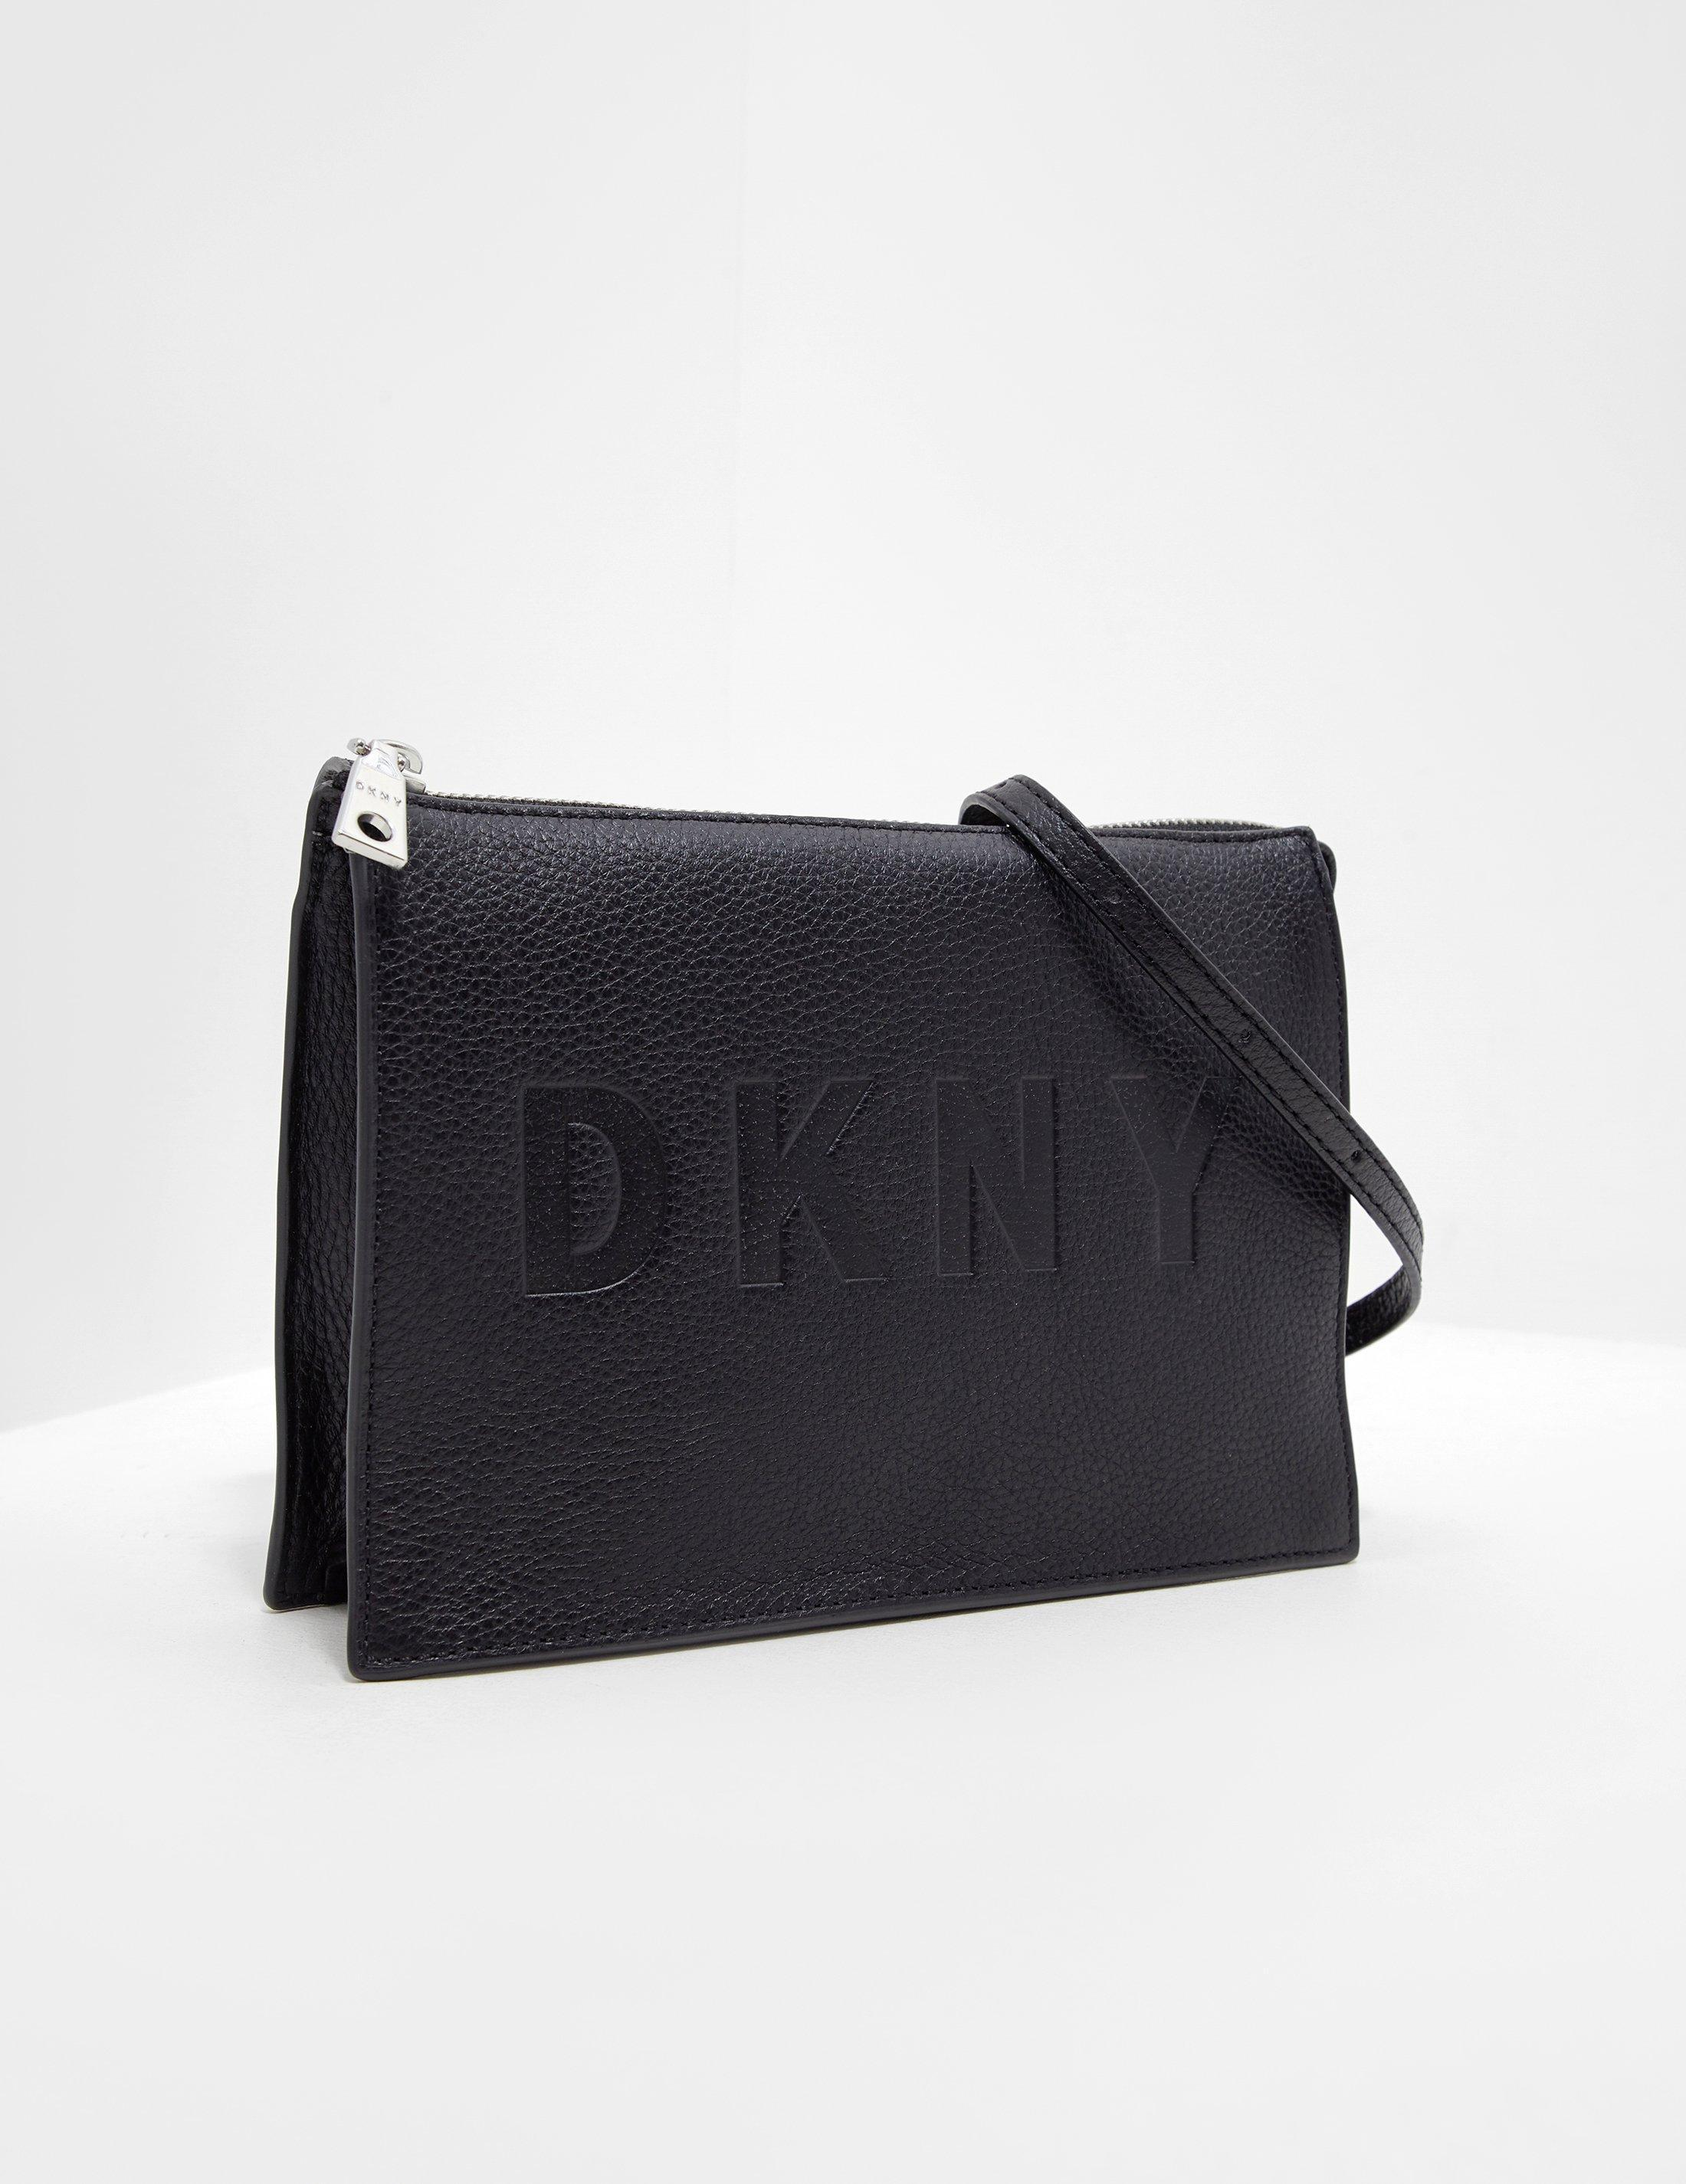 ed9621807c Lyst - DKNY Commuter Shoulder Bag Black in Black